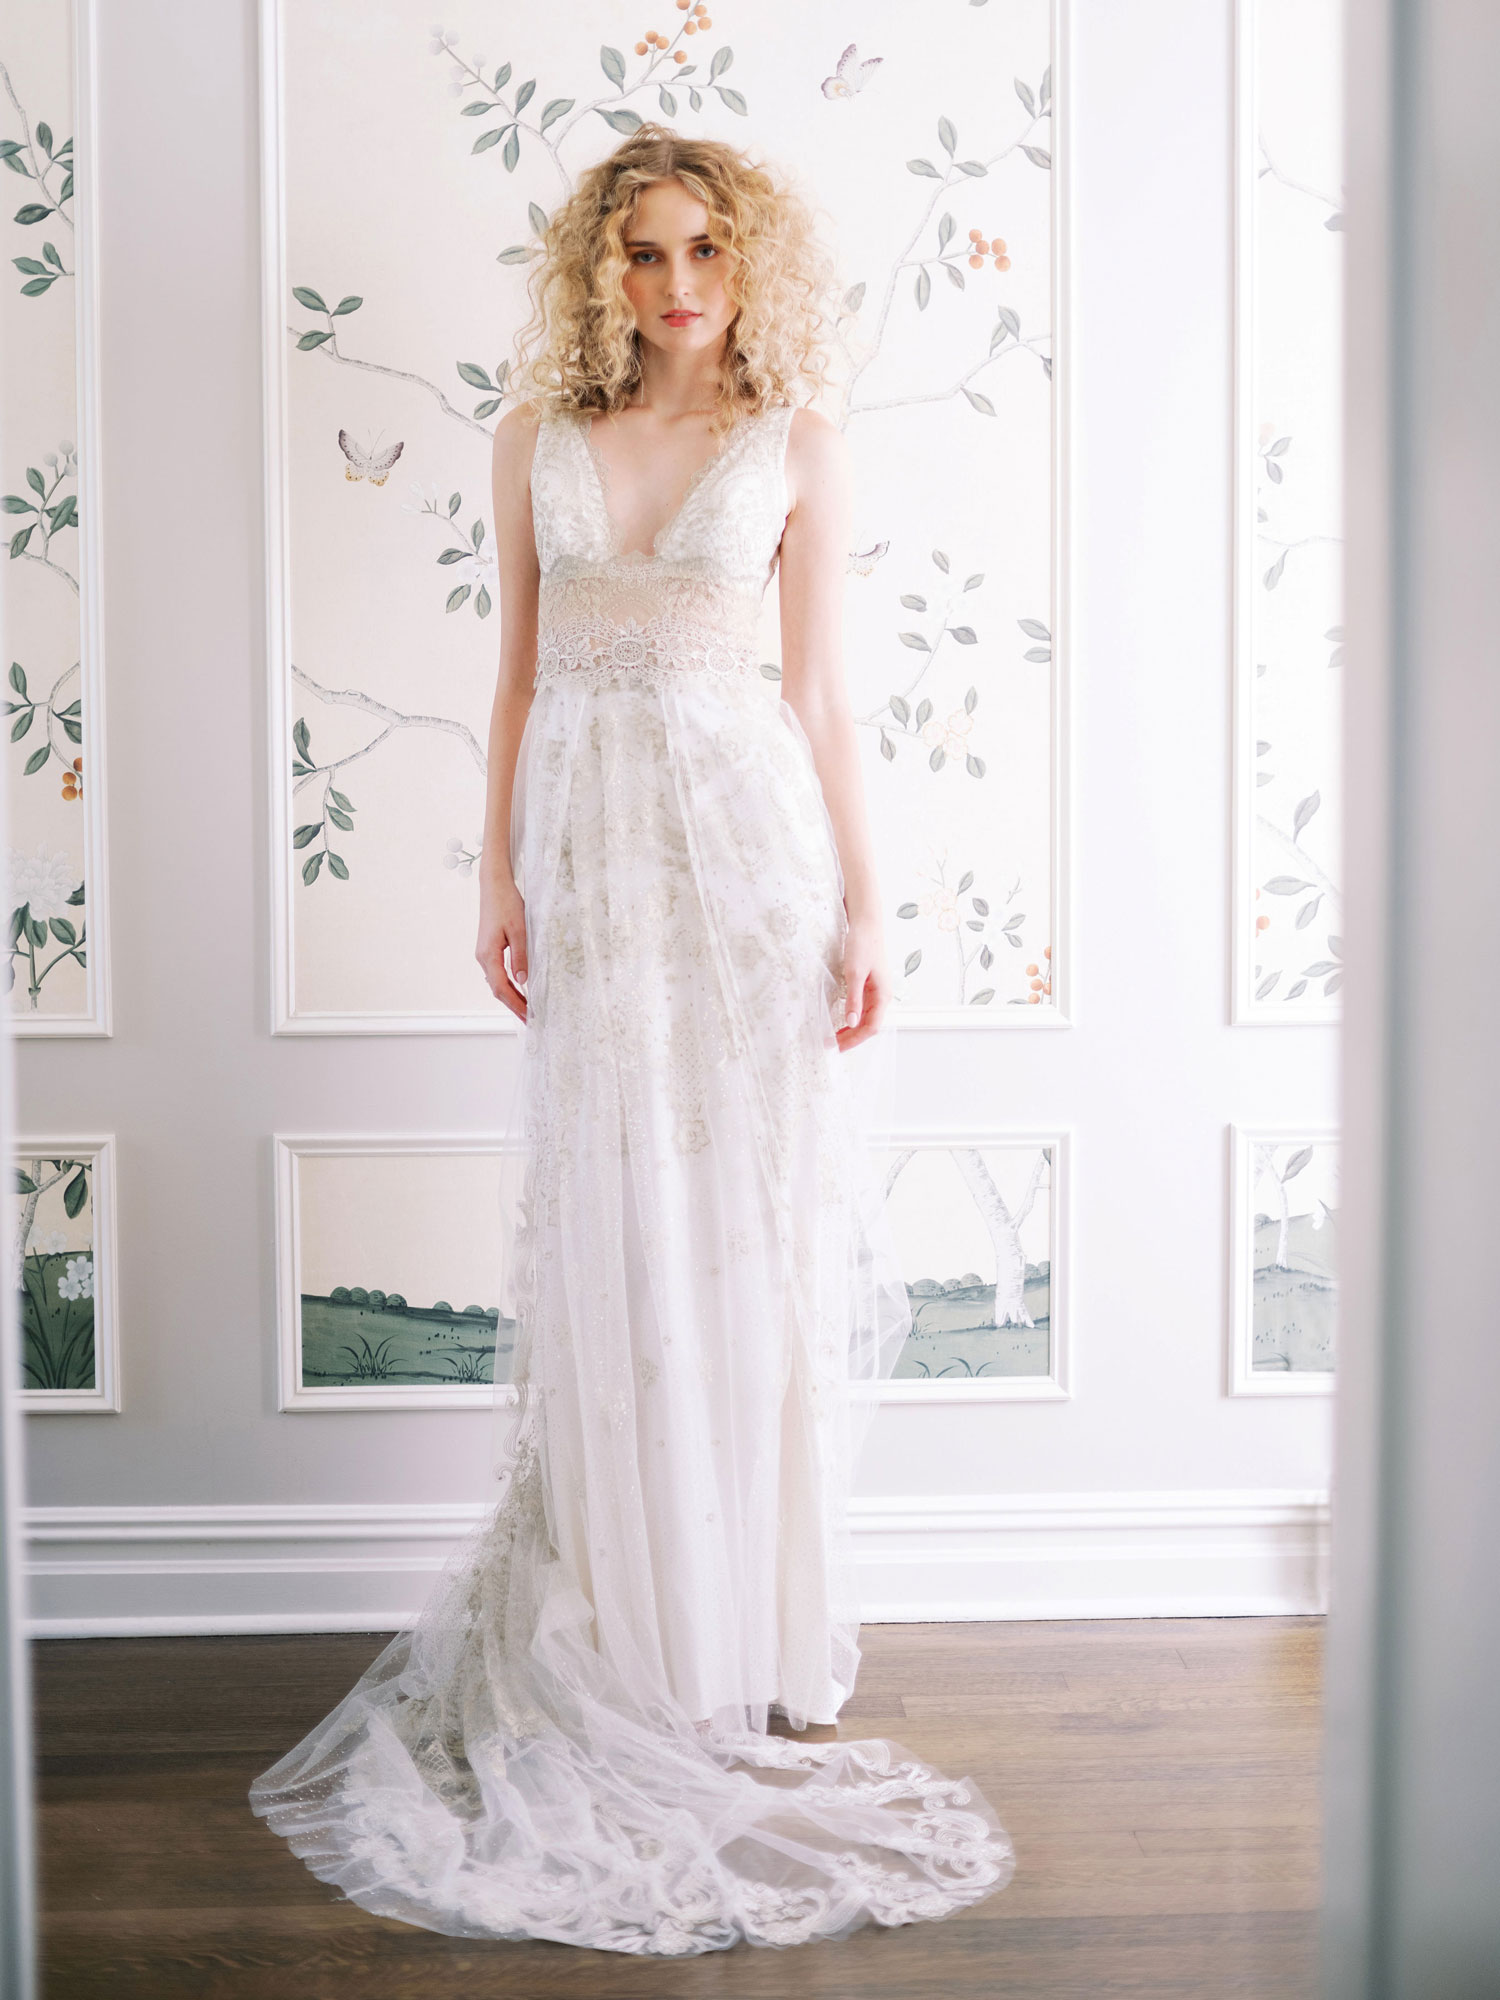 Claire Pettibone Evolution 2020 bridal collection Anastasia v-neck wedding dress